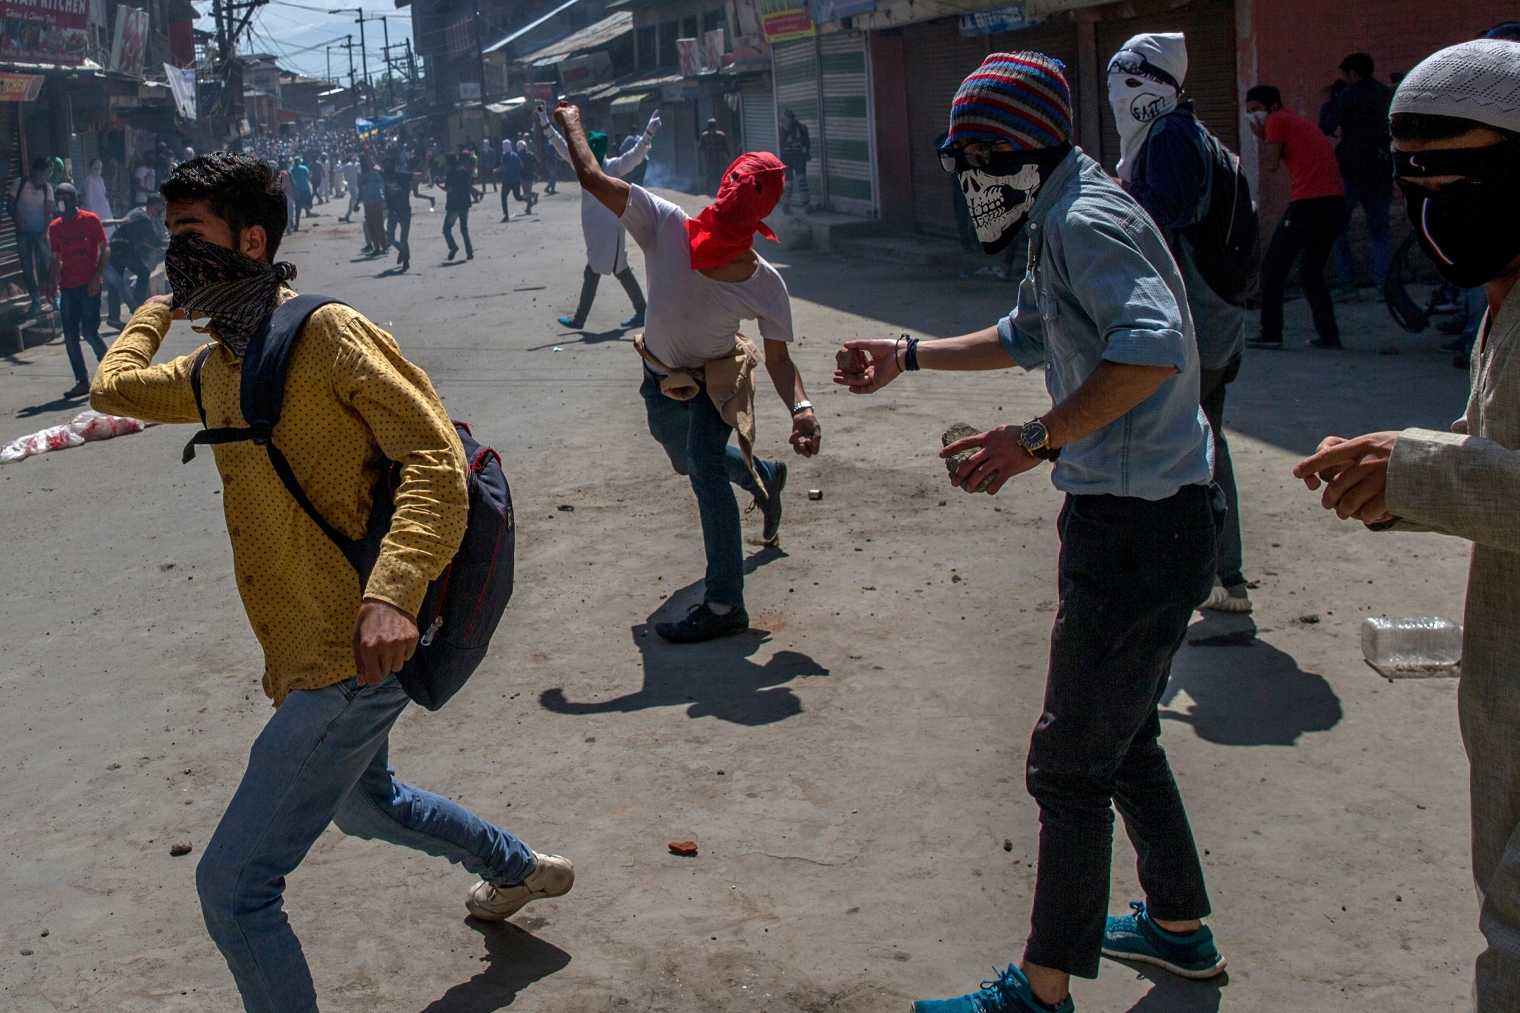 Kashmiri protesters throw rocks and bricks at Indian policemen during a protest in Srinagar on June 2, 2017. Government forces fired tear gas and pellets on Kashmiris who gathered after Friday afternoon prayers to protest against Indian rule.